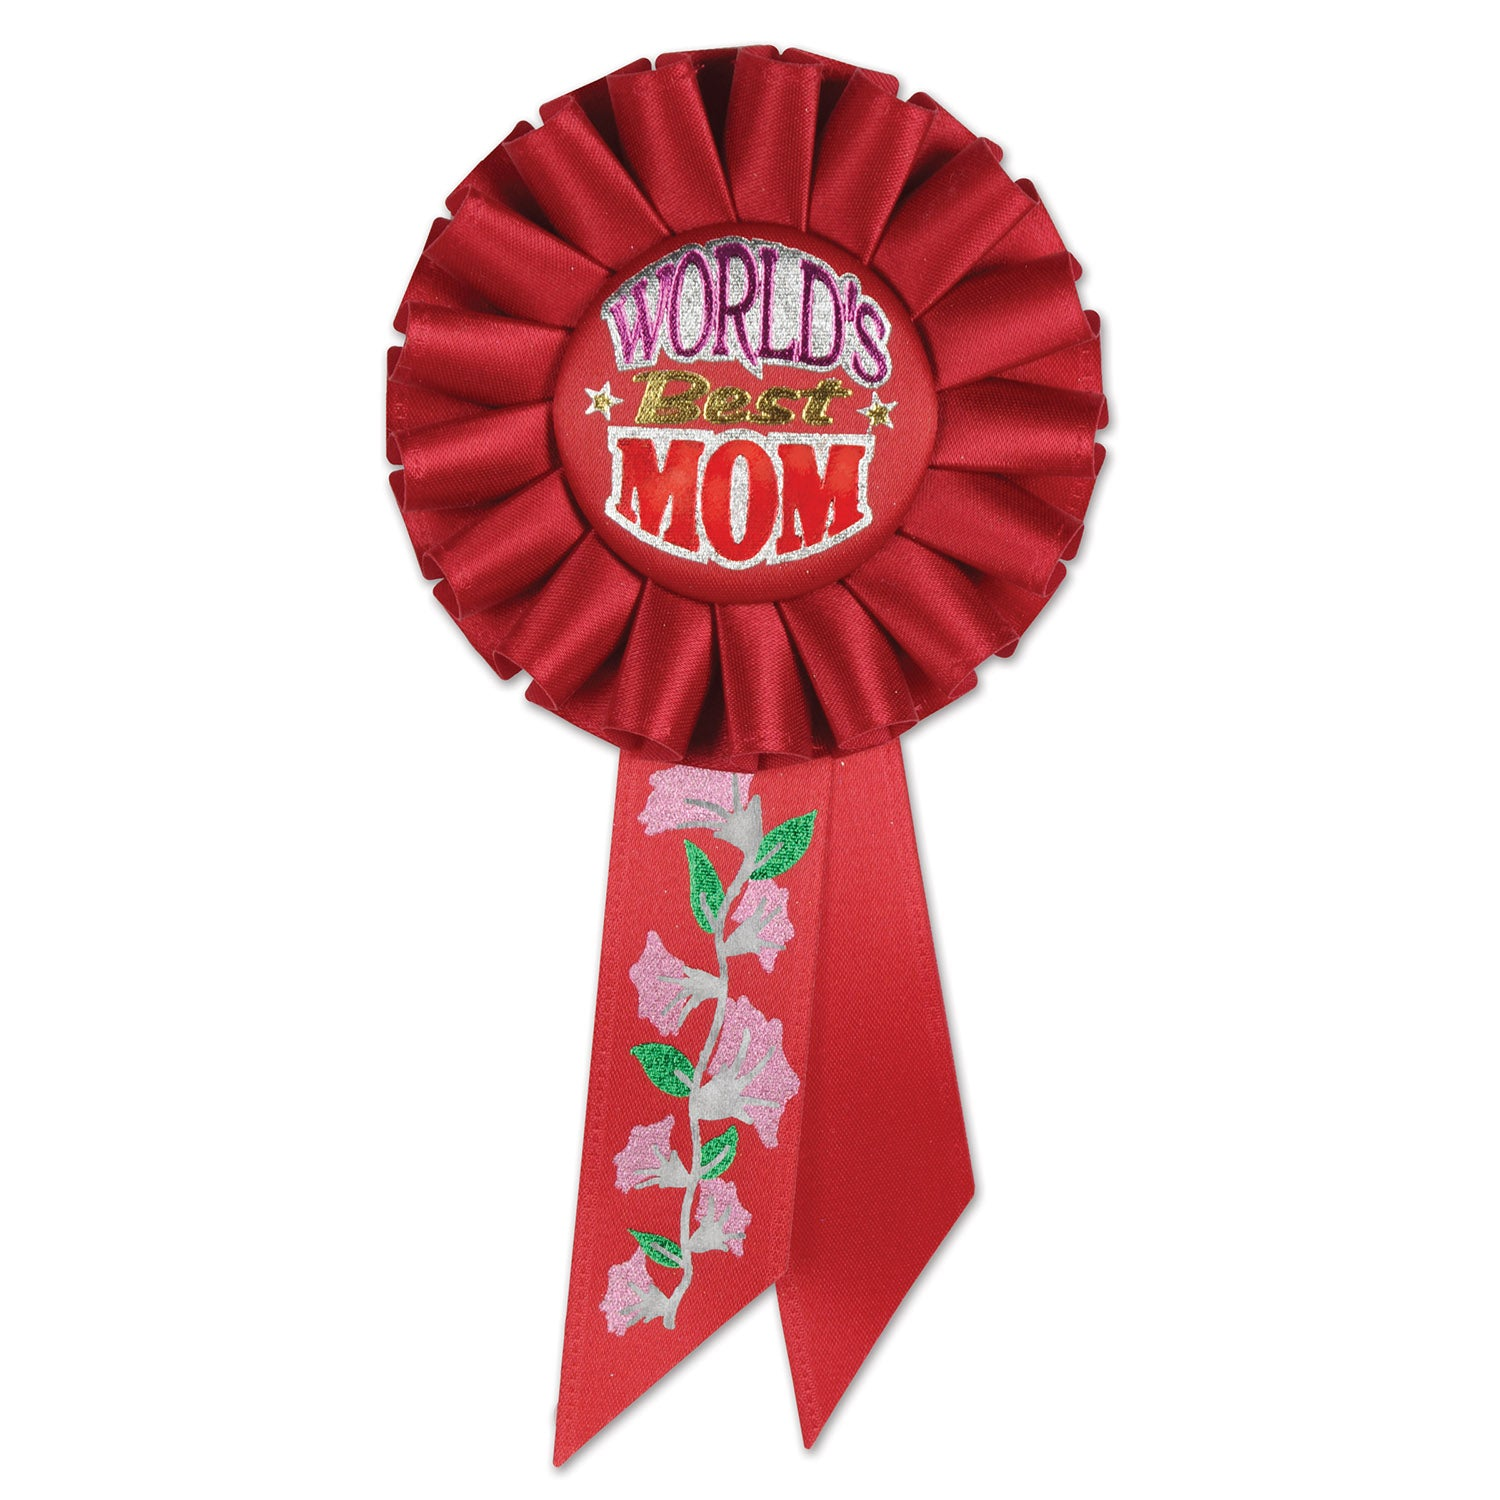 World's Best Mom Rosette by Beistle - Mother's Day Theme Decorations